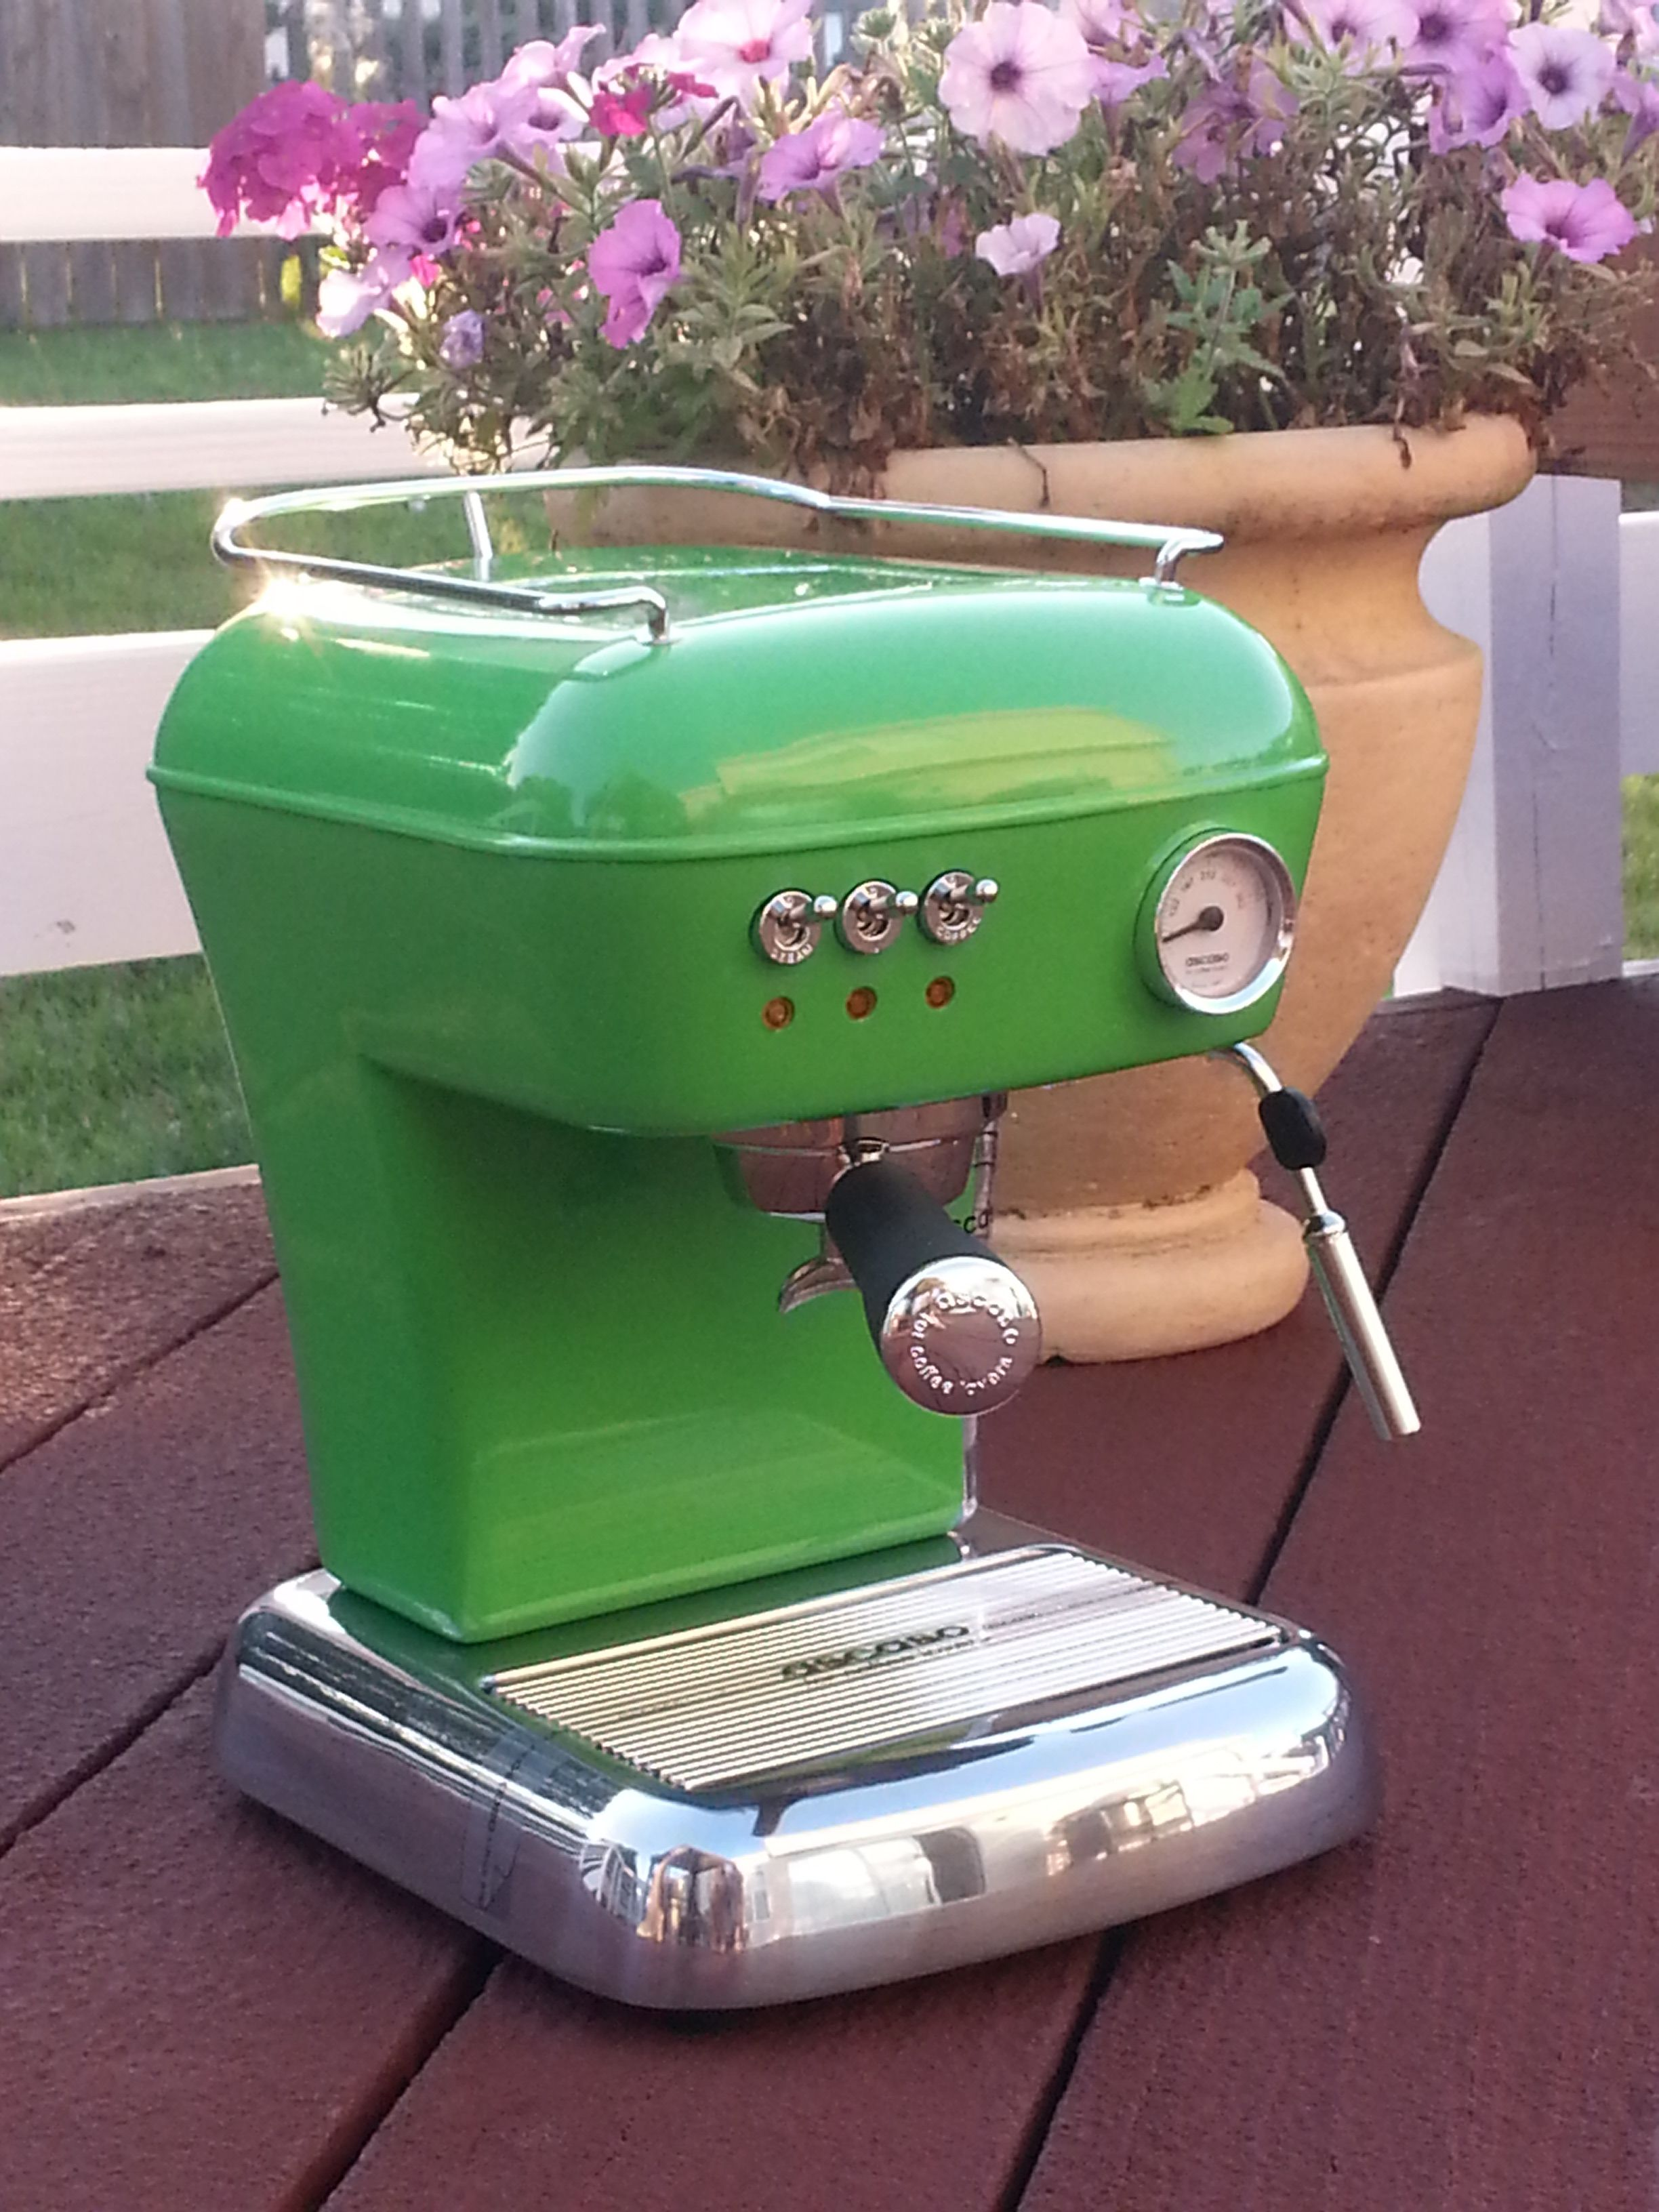 Meadow Green Ascaso Dream UP espresso machine. Contact